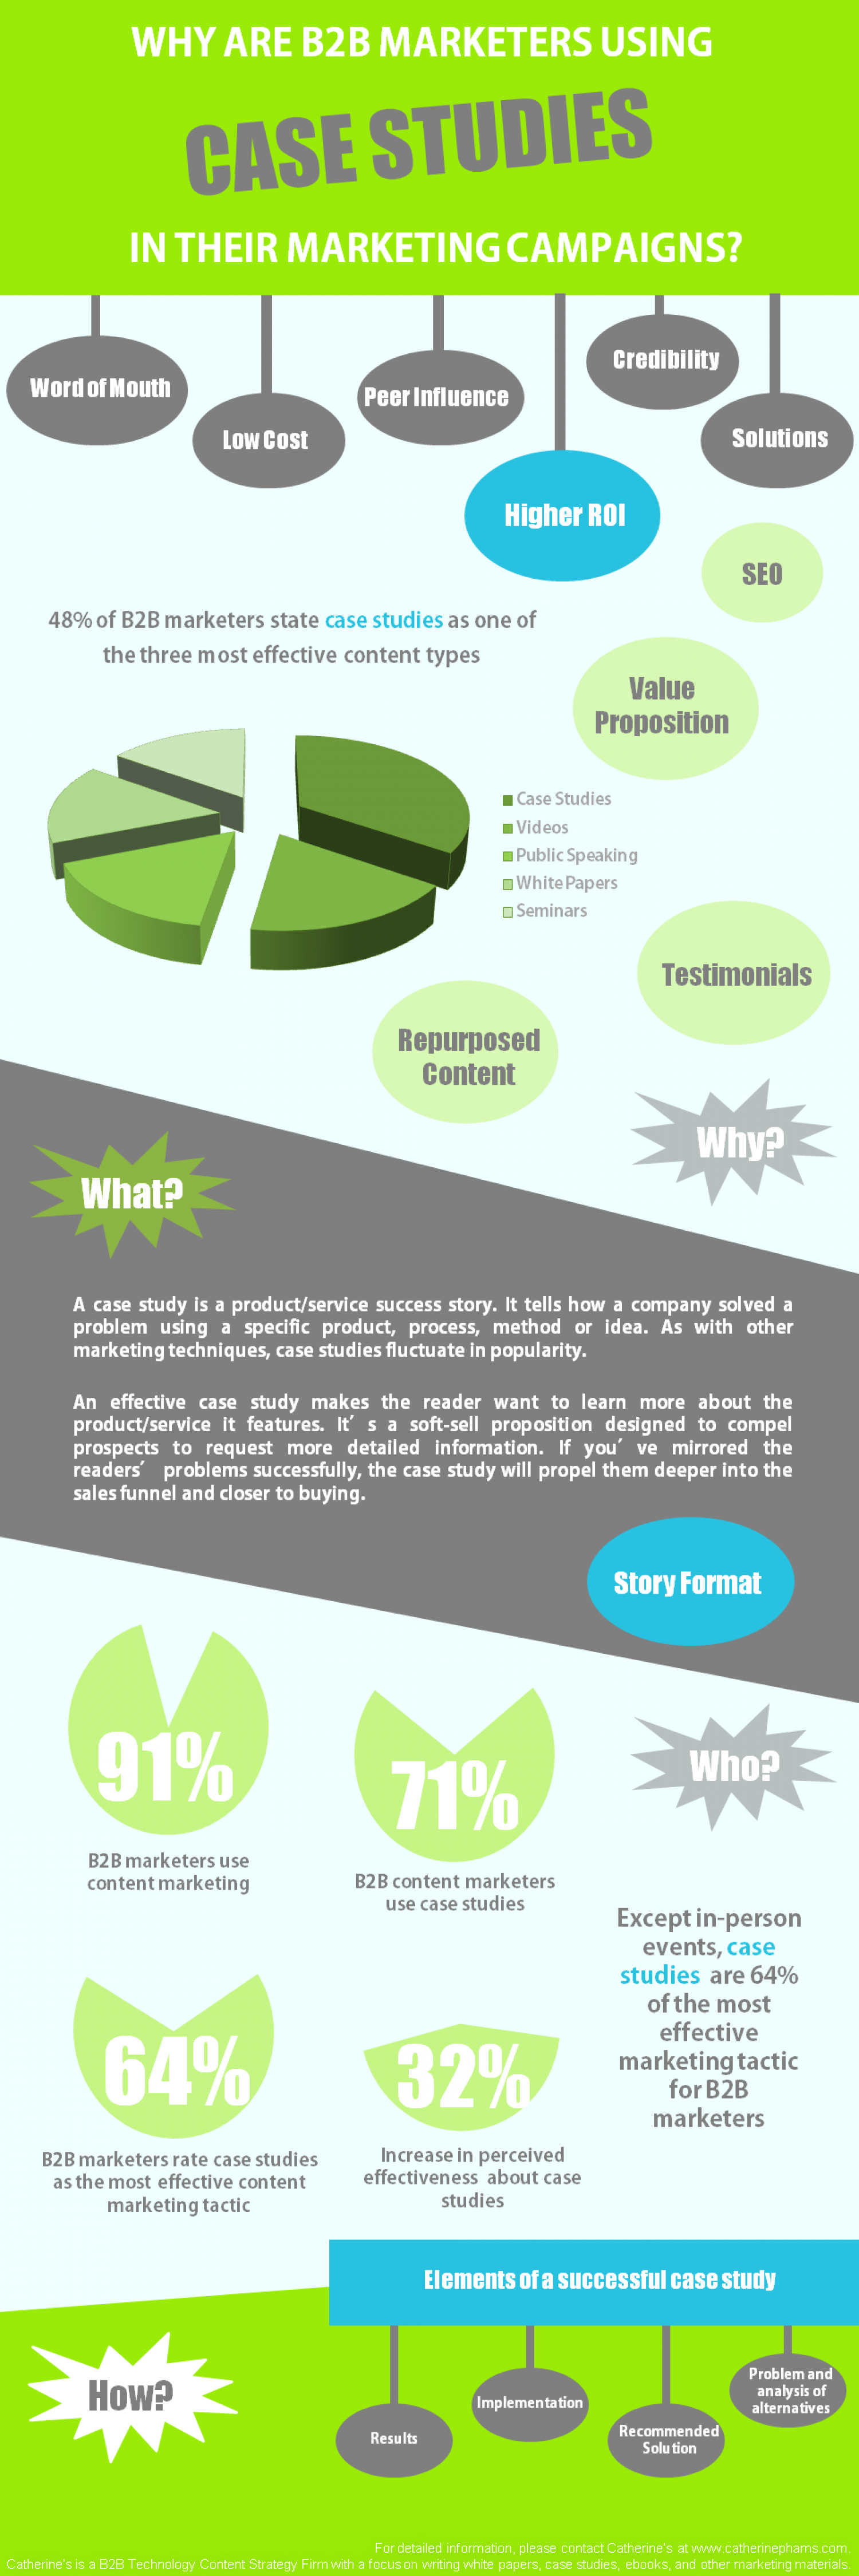 Why Are B2B Marketers Using Case Studies in Their Marketing Campaigns Infographic